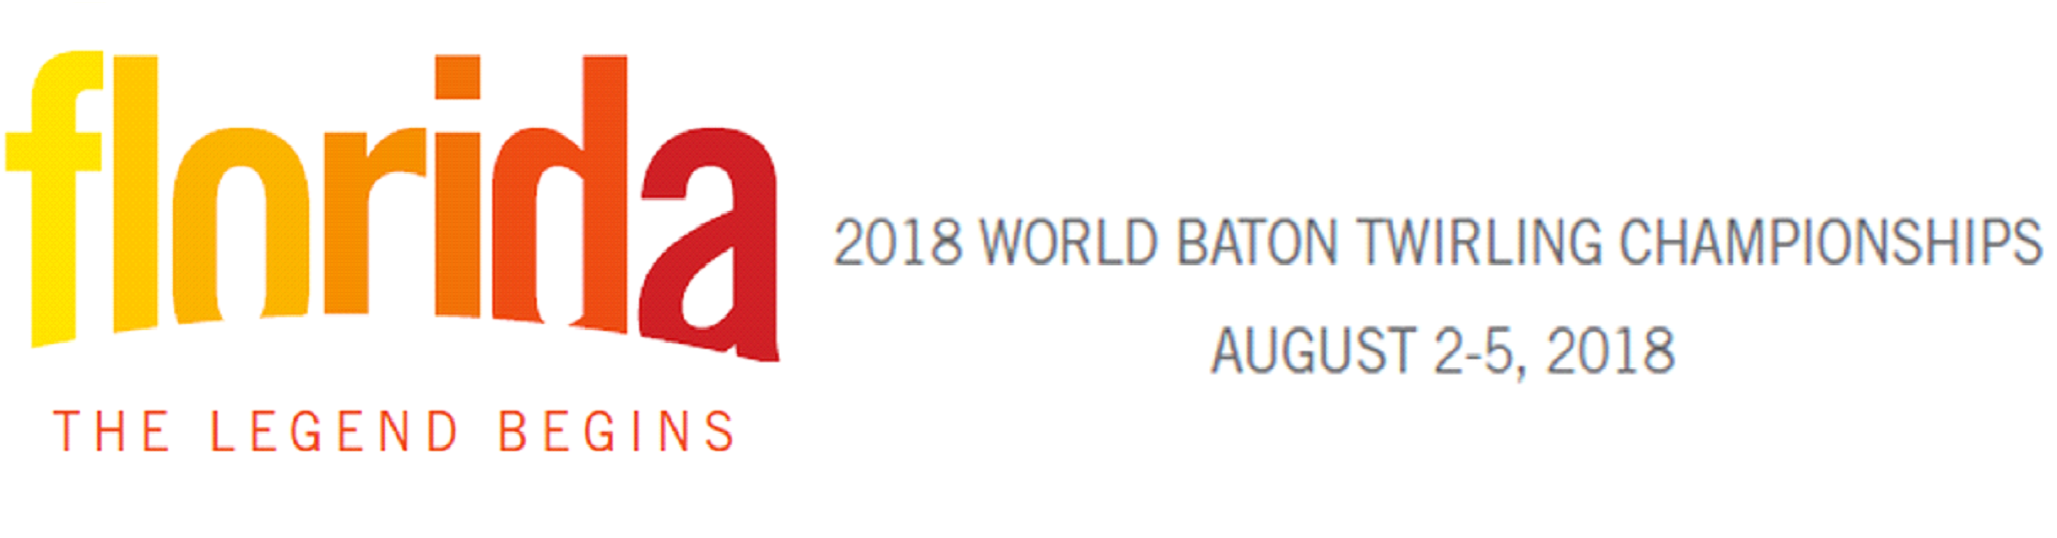 The 2018 World Baton Twirling Championship will be held at the Silver Spurs Arena in Kissimmee, FL, USA between August 2-5 2018.